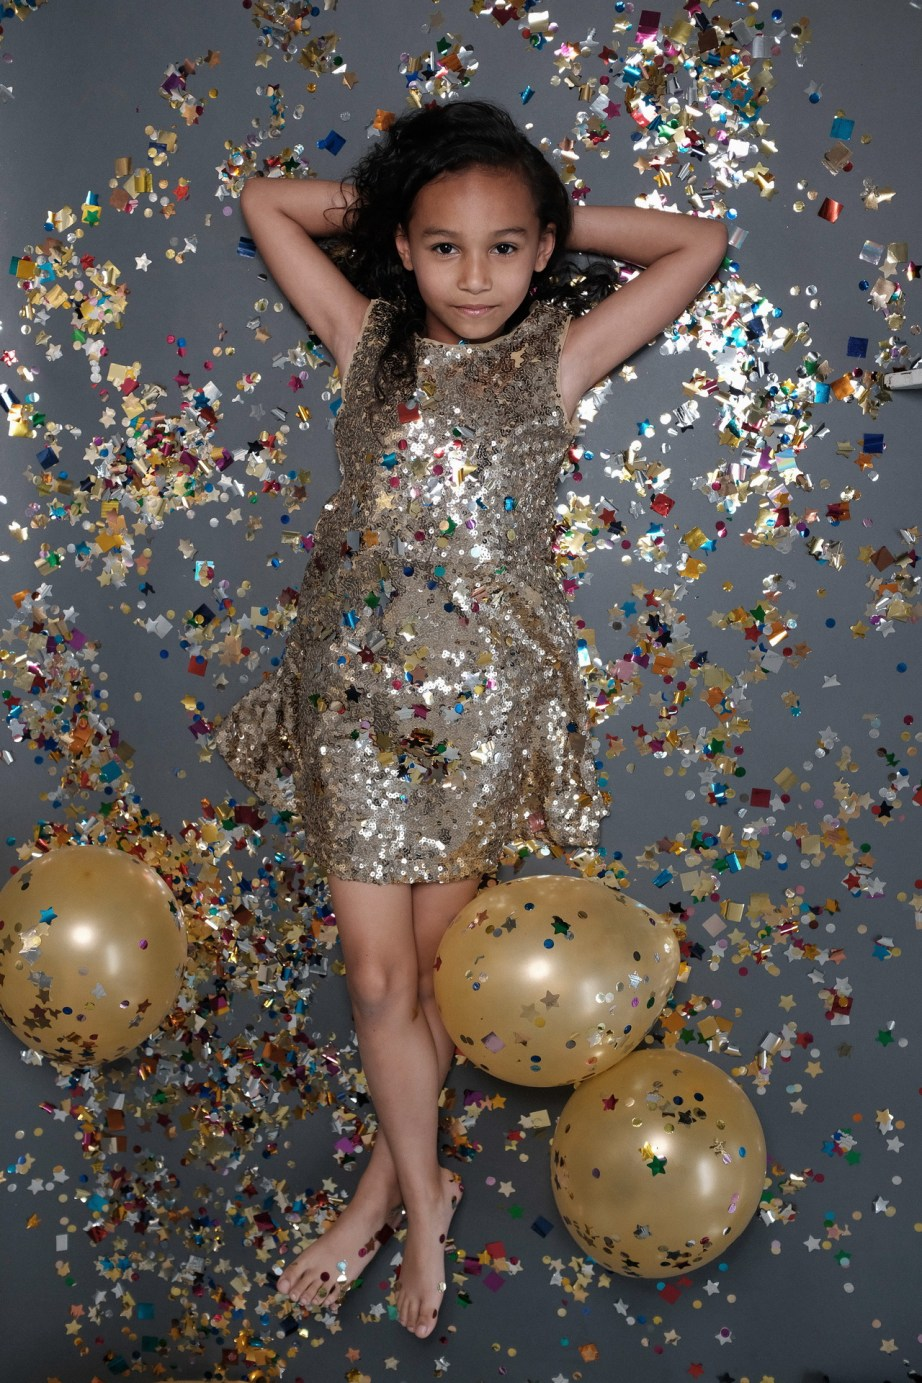 top kids childrens photographer studio orange county 27 nicole Caldwell